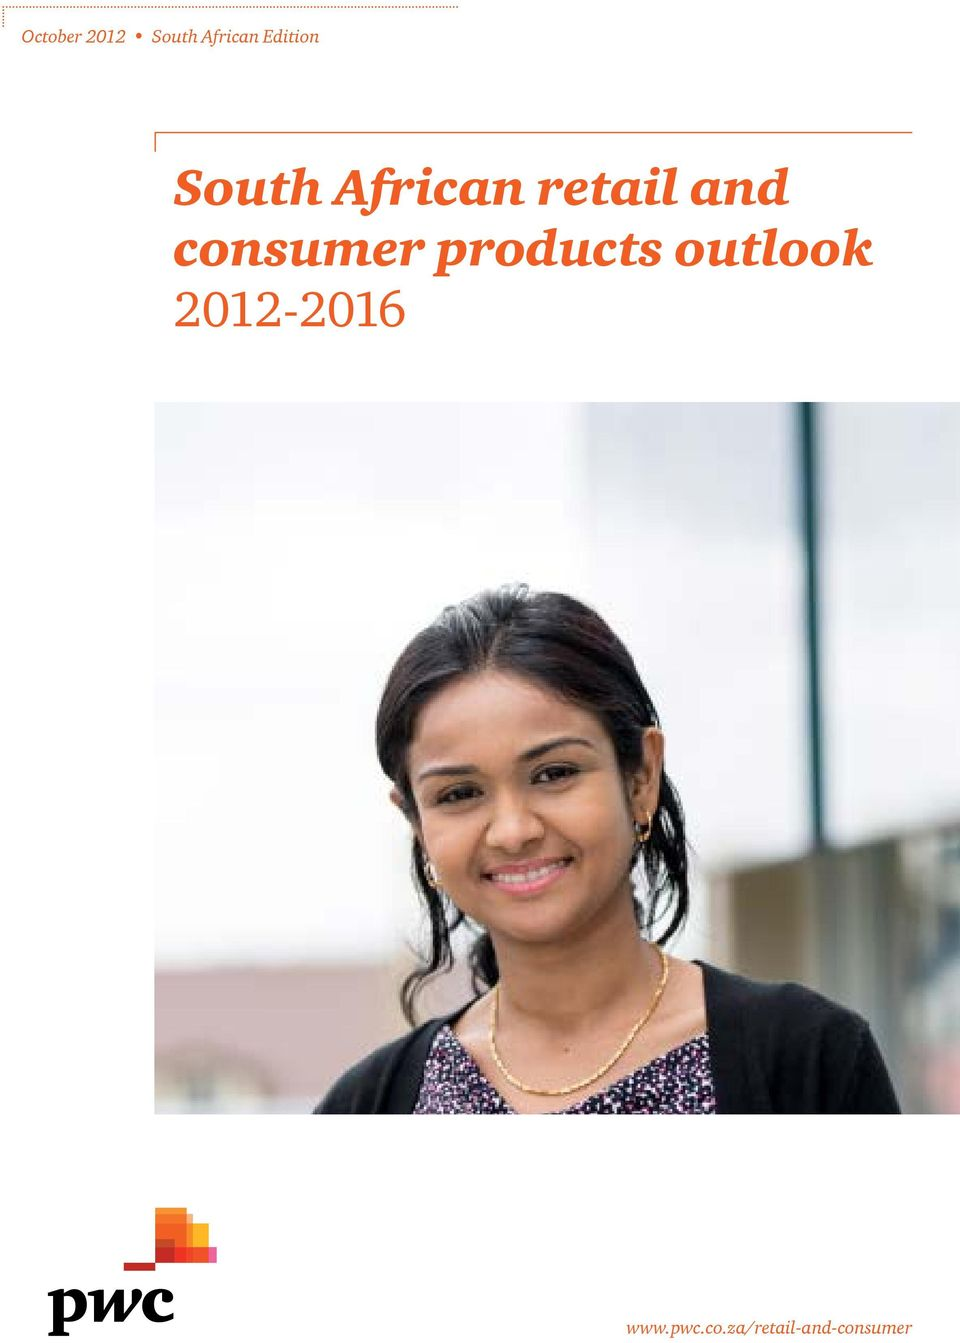 consumer products outlook